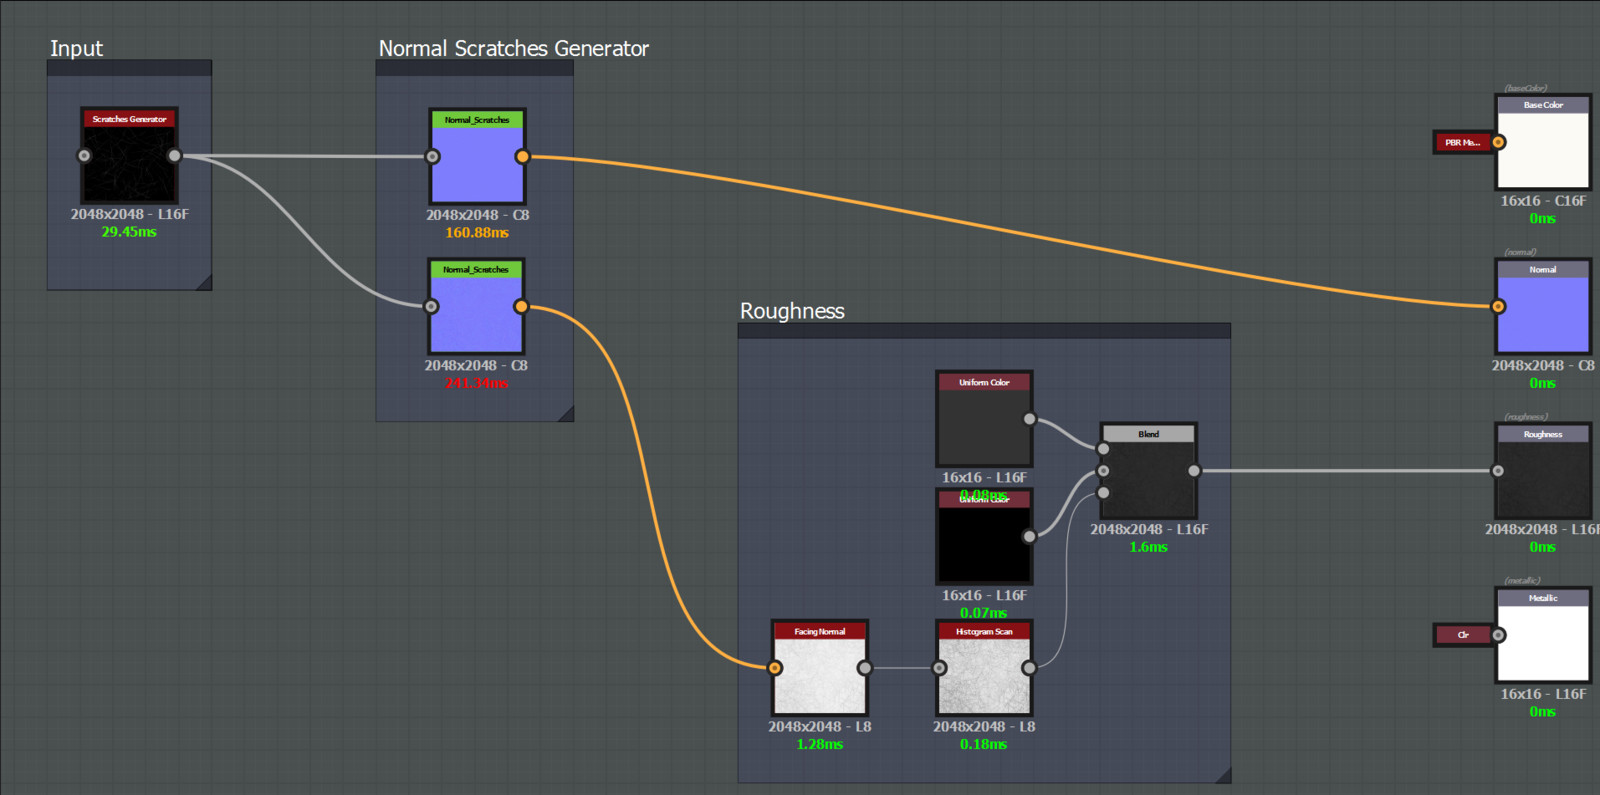 Graph. The green node is the normal scratches generator. The node takes any input, but grunges or scratches look best.